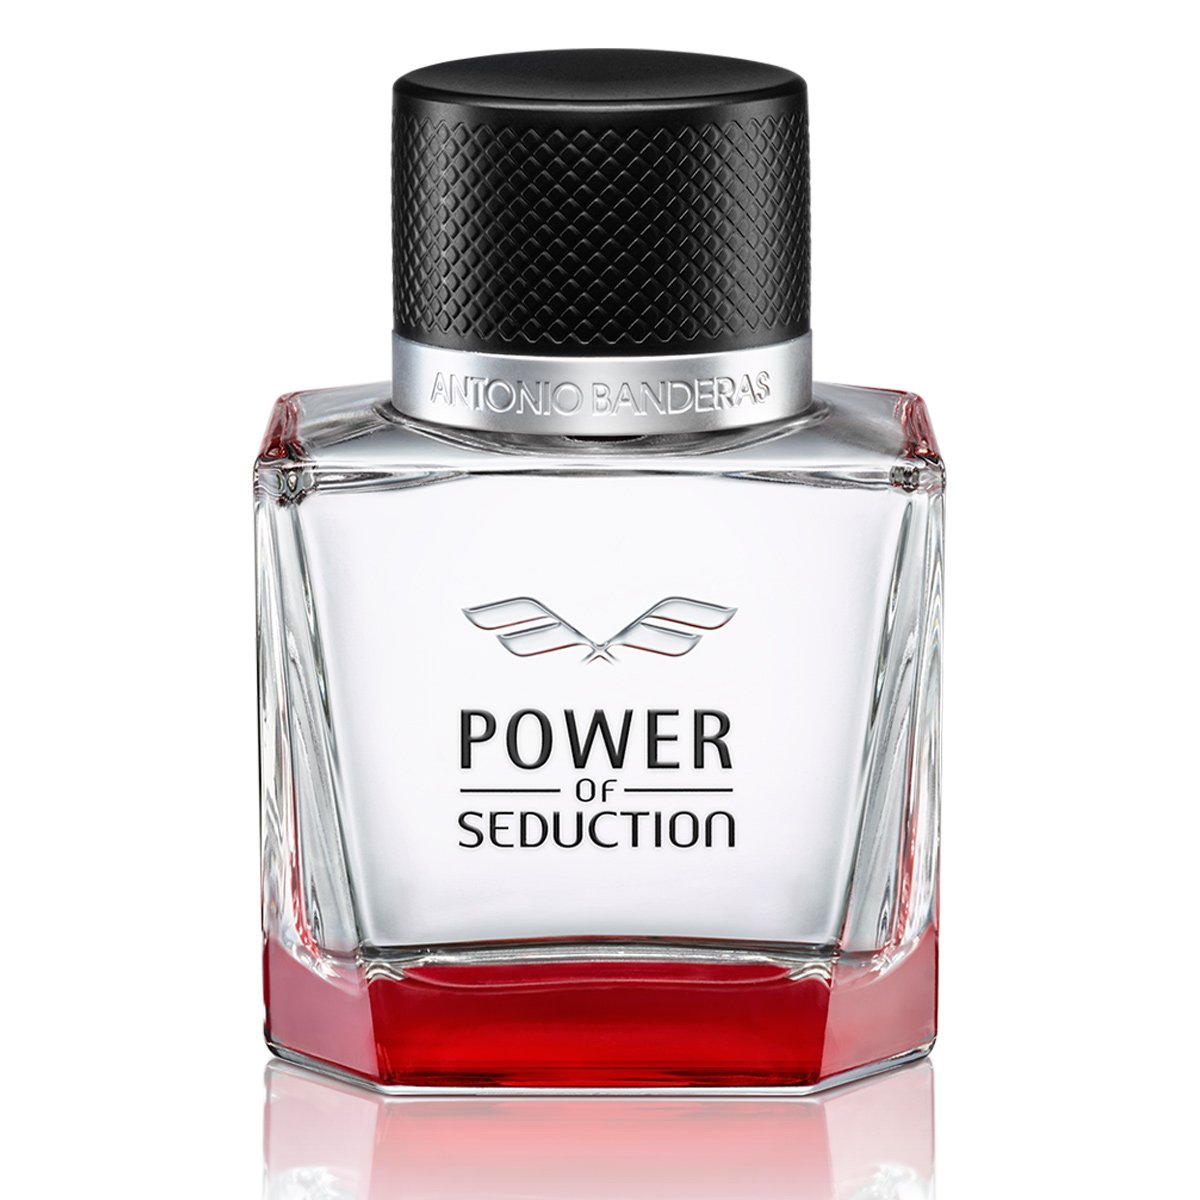 Perfume Masculino Power Of Seduction Antonio Banderas Eau de Toilette 50ml